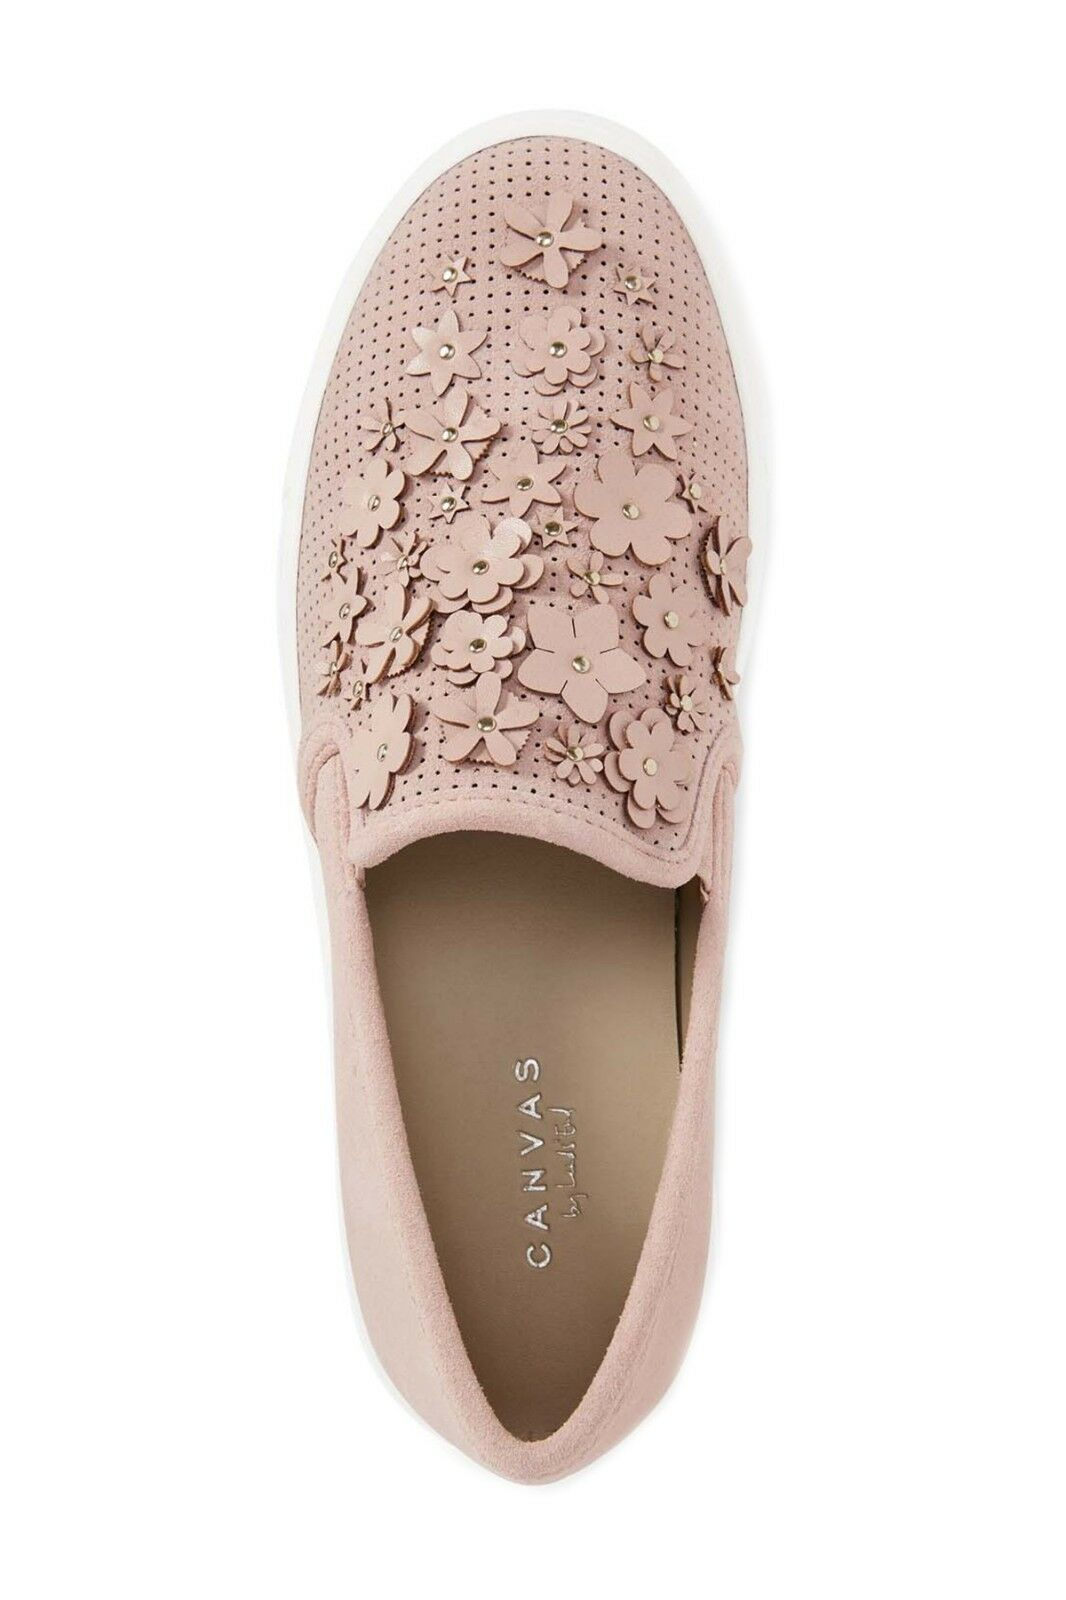 Lands End End End Canvas 3D Flowers Studs Perf Leather Sneaker SlipOn Womens 10 Pink NIB b7f2fe